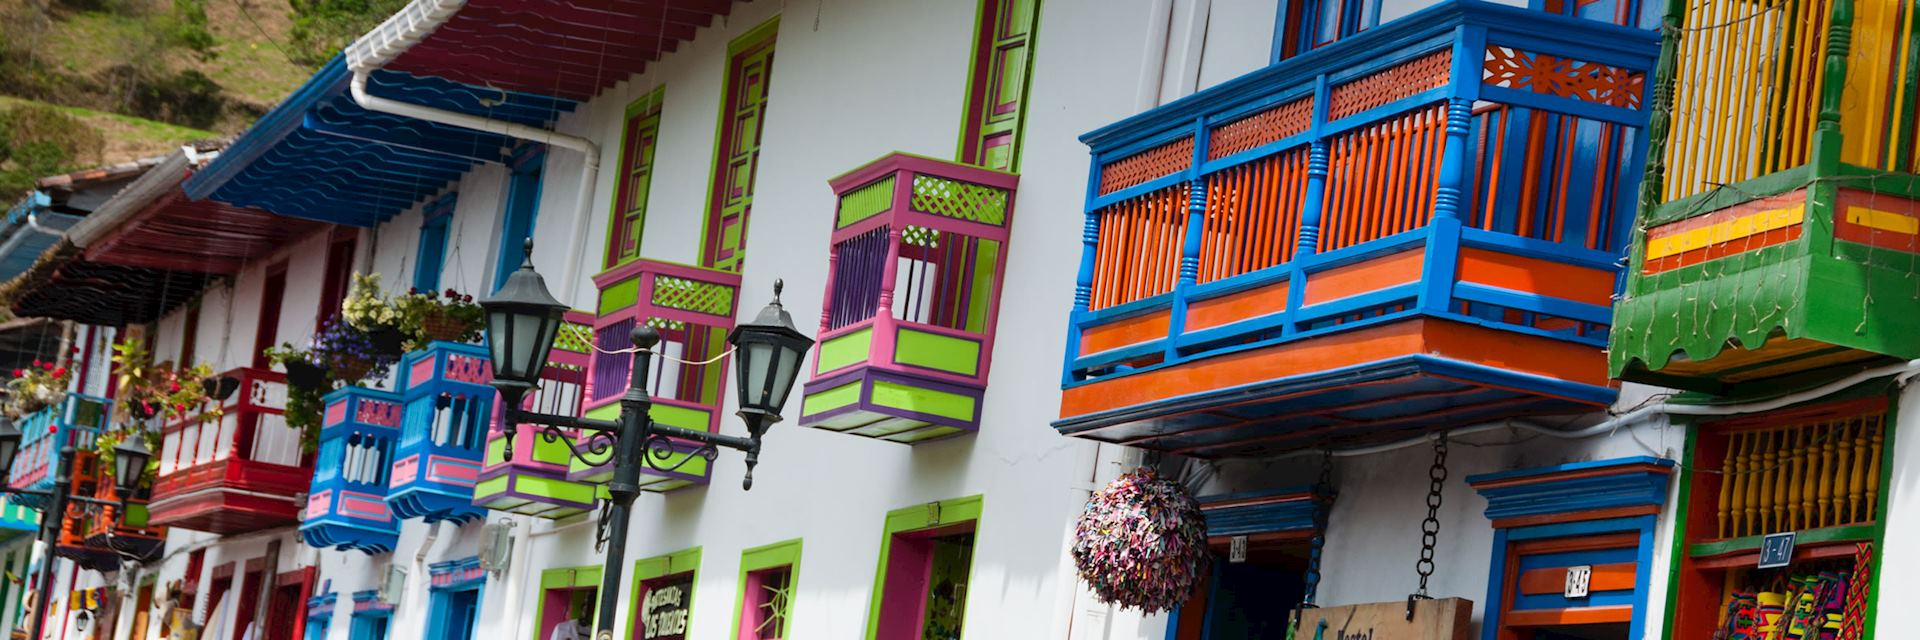 Colourful houses in Salento, near Bogota